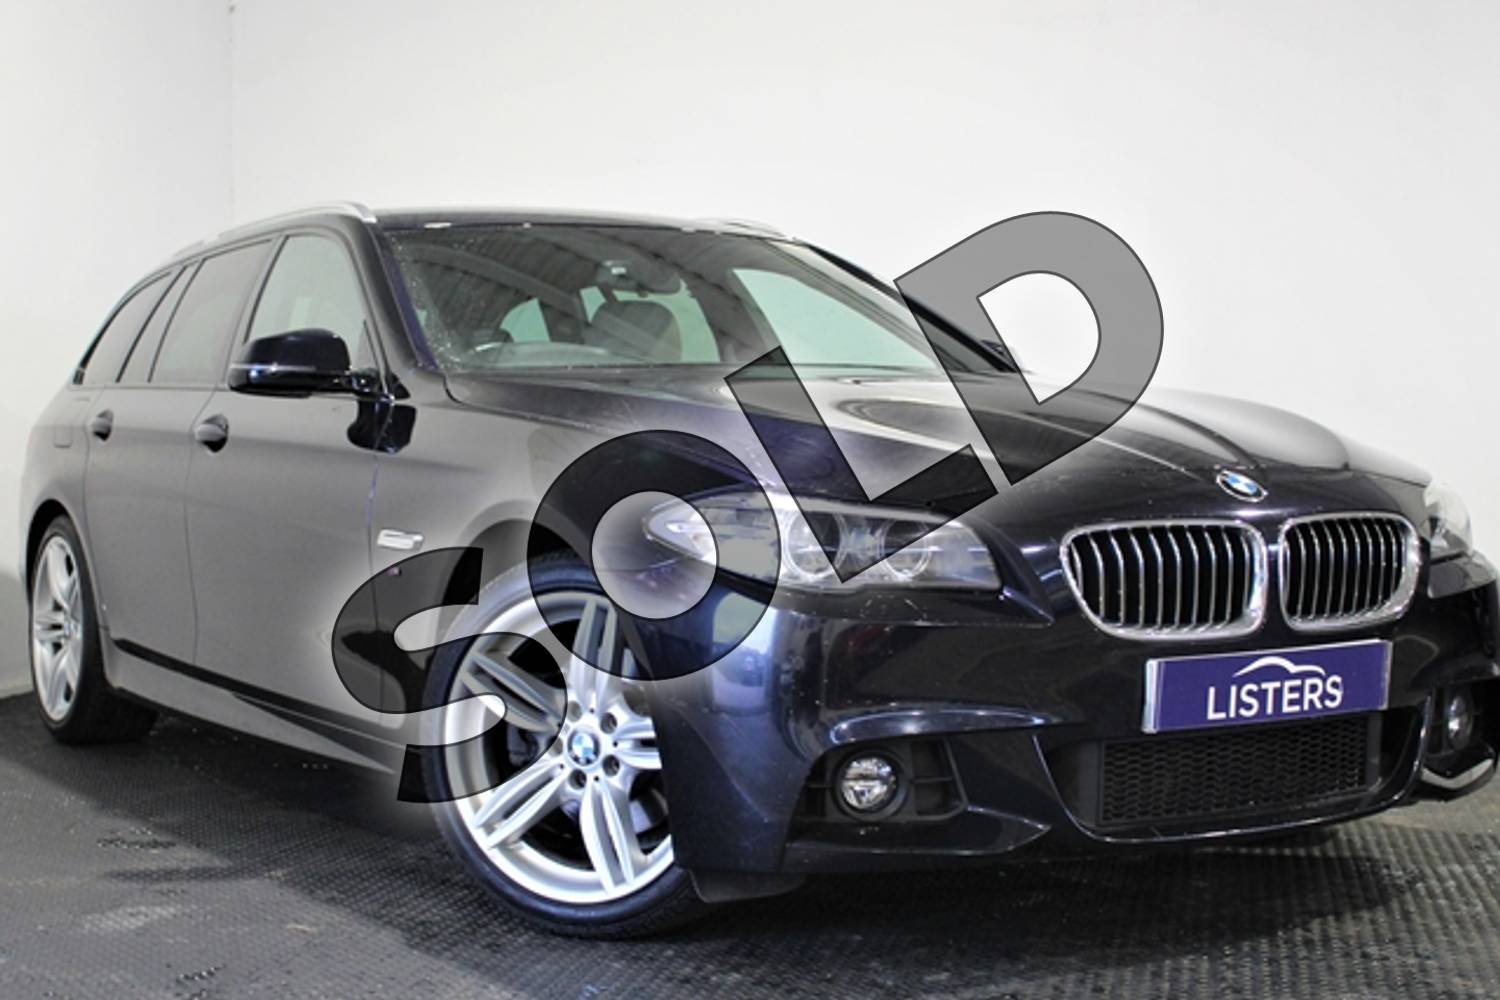 2014 BMW 5 Series Diesel Touring 520d M Sport 5dr Step Auto in Metallic - Carbon black at Listers U Stratford-upon-Avon